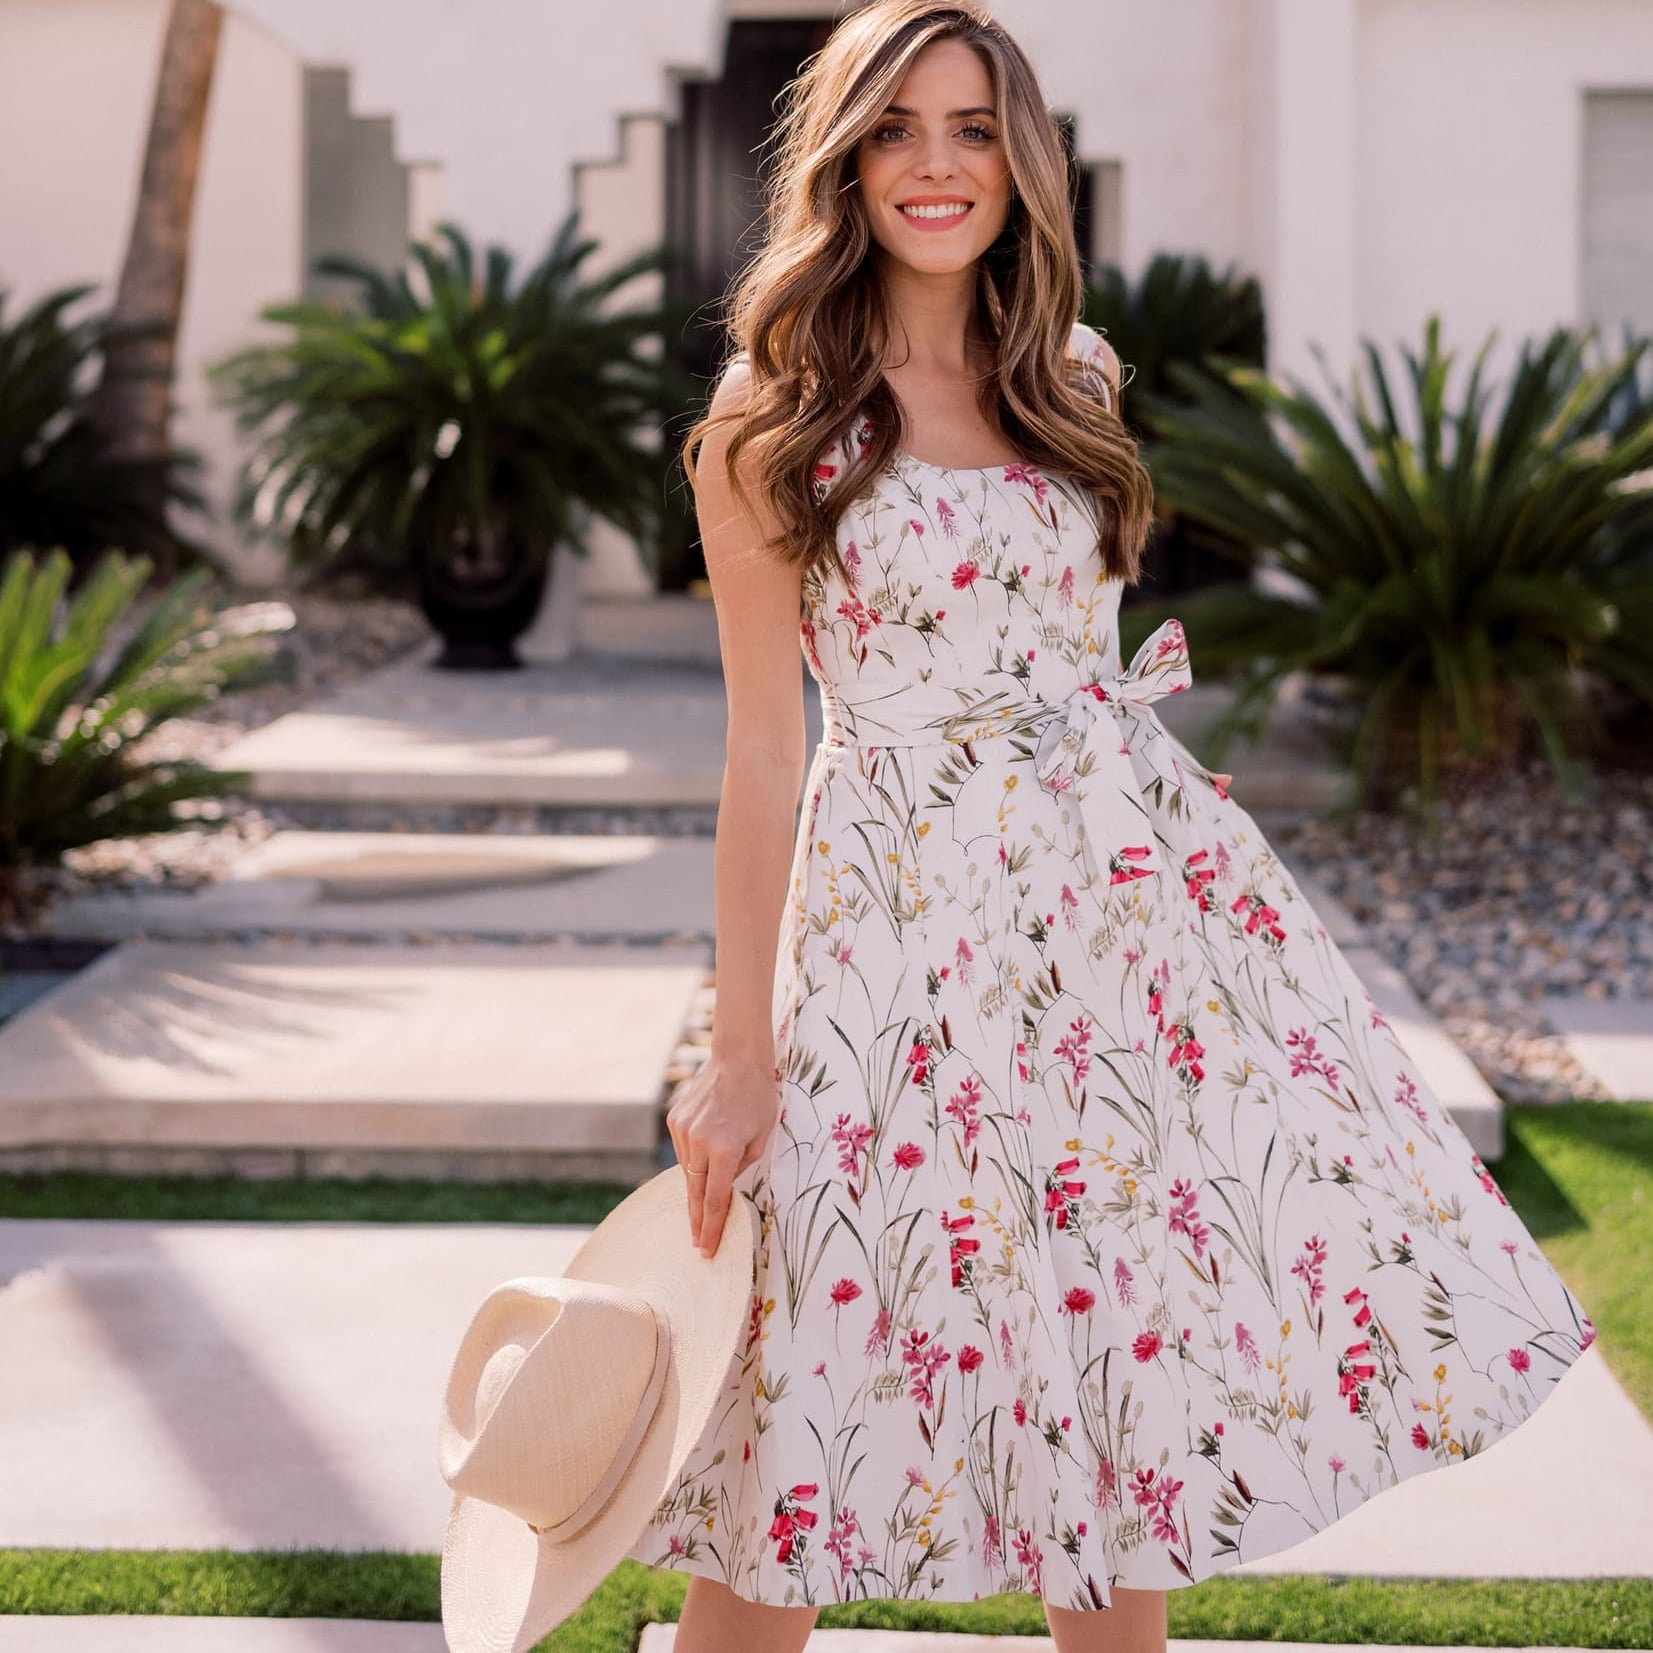 dbc2aff4b350 Gal Meets Glam Collection Phoebe Floral Puff-Sleeve Chiffon Maxi Dress |  Best Summer Dresses 2019 | POPSUGAR Fashion Australia Photo 22